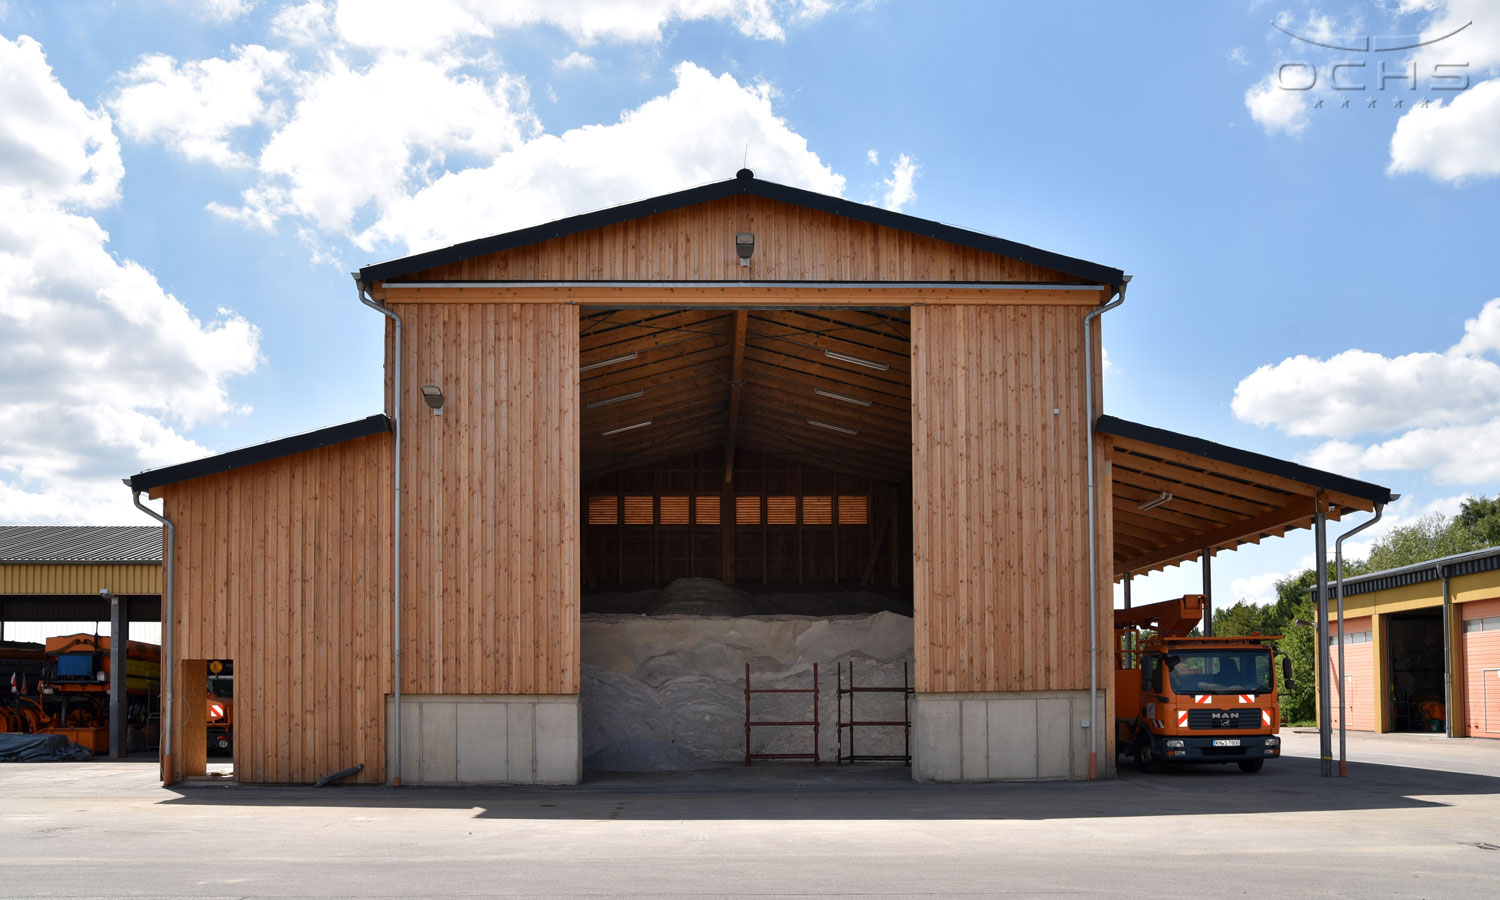 Salt storage depot in Simmern